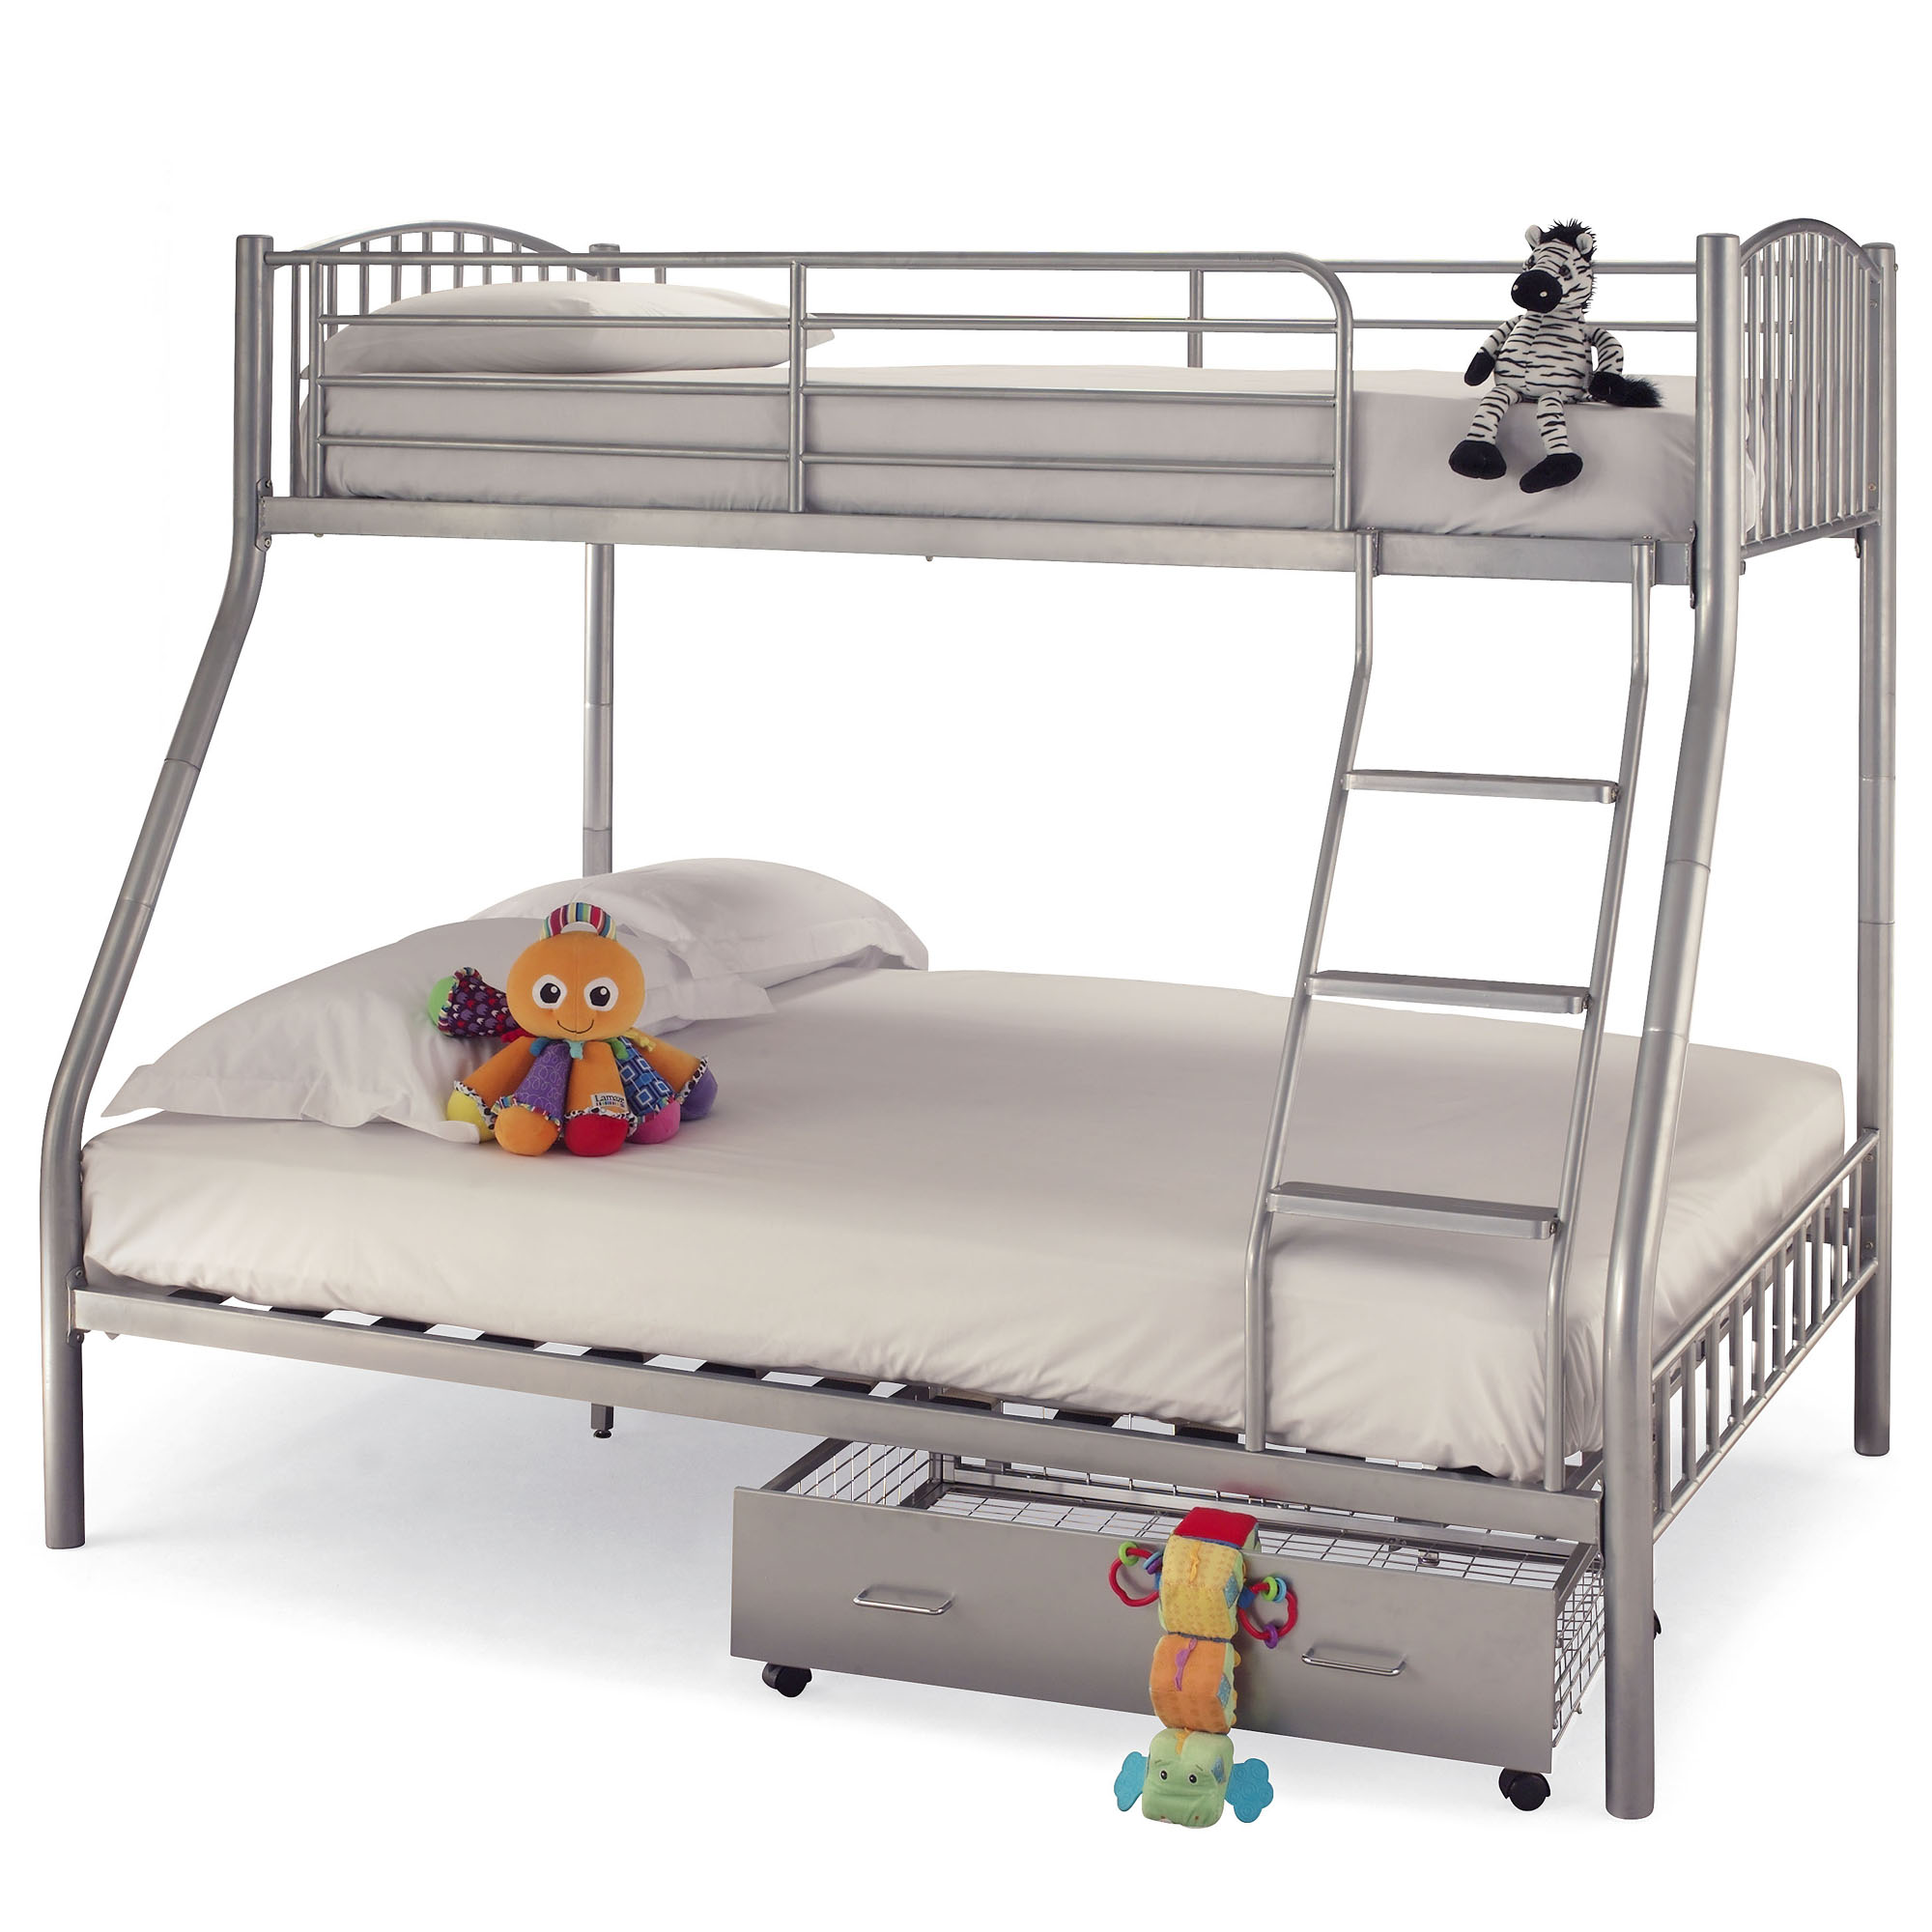 serene oslo three sleeper silver bunk bed online bed mattress store shops in south london. Black Bedroom Furniture Sets. Home Design Ideas